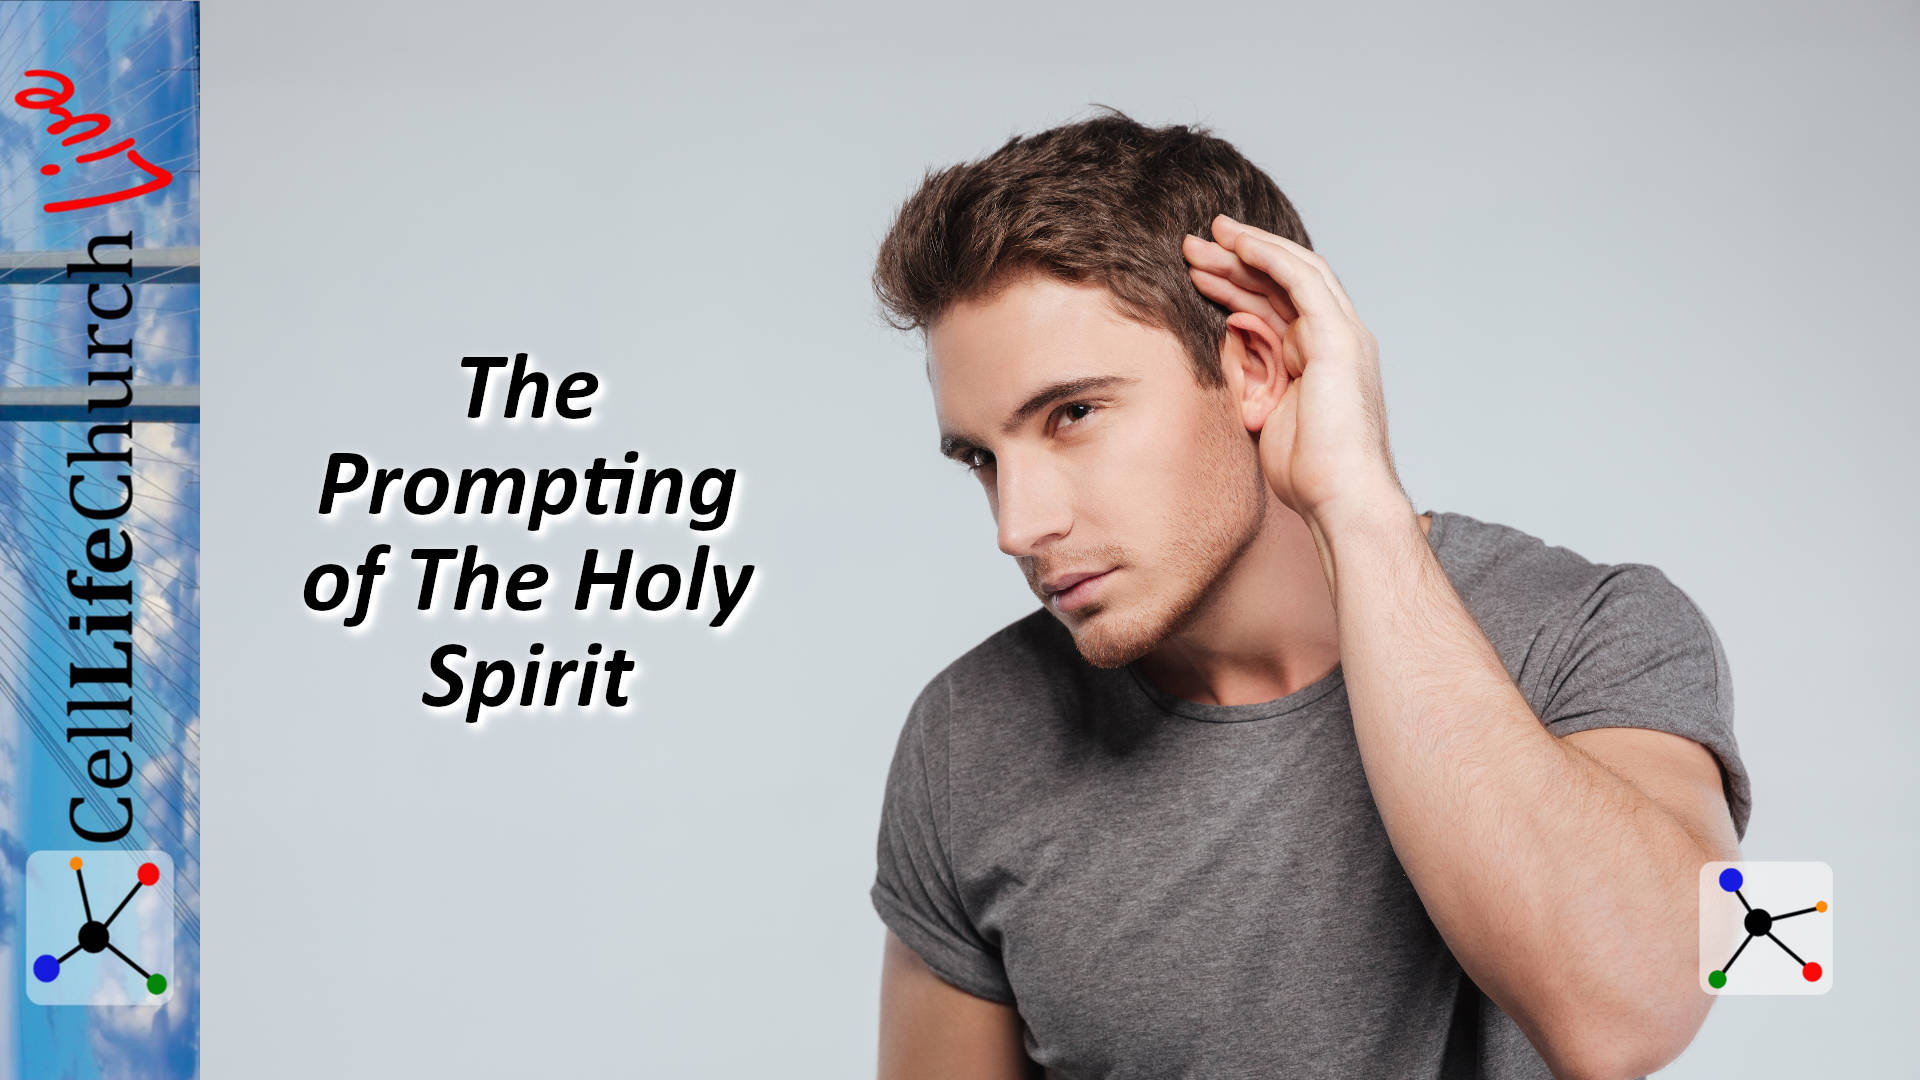 The Prompting of The Holy Spirit